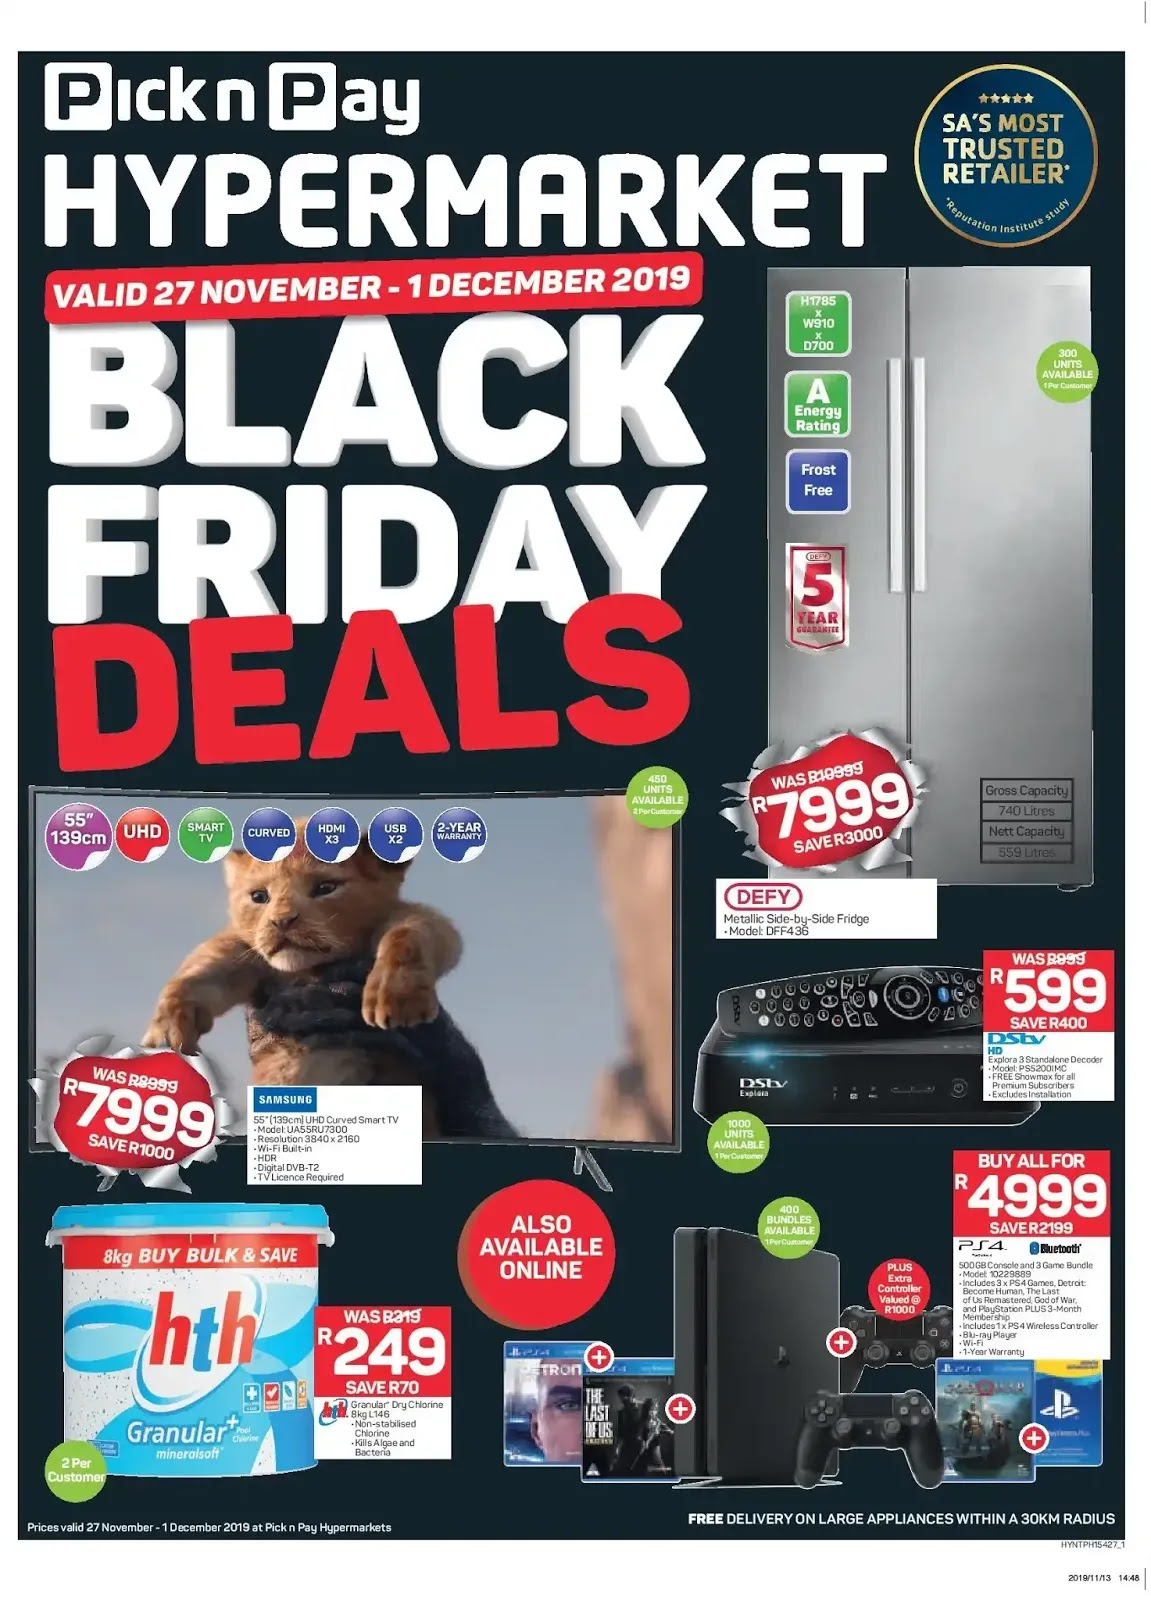 Pick n Pay Hypermarkets Black Friday deals - Page 1